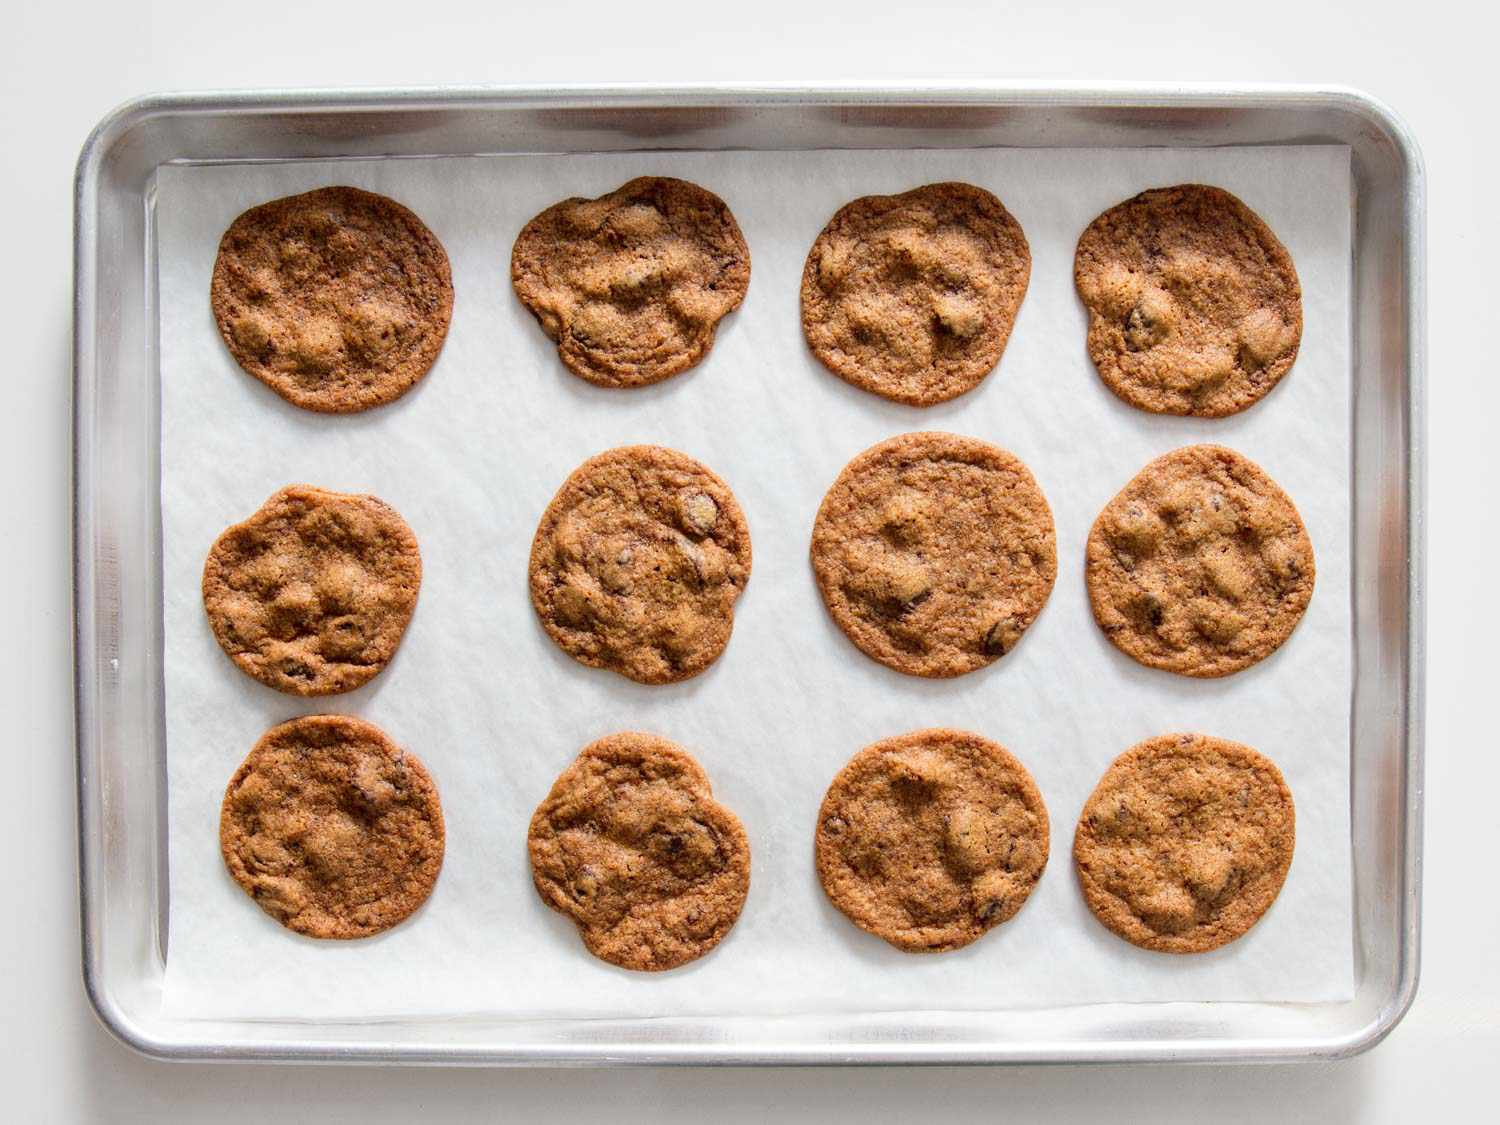 Overhead view of baked thin chocolate chip cookies on a lined rimmed baking sheet